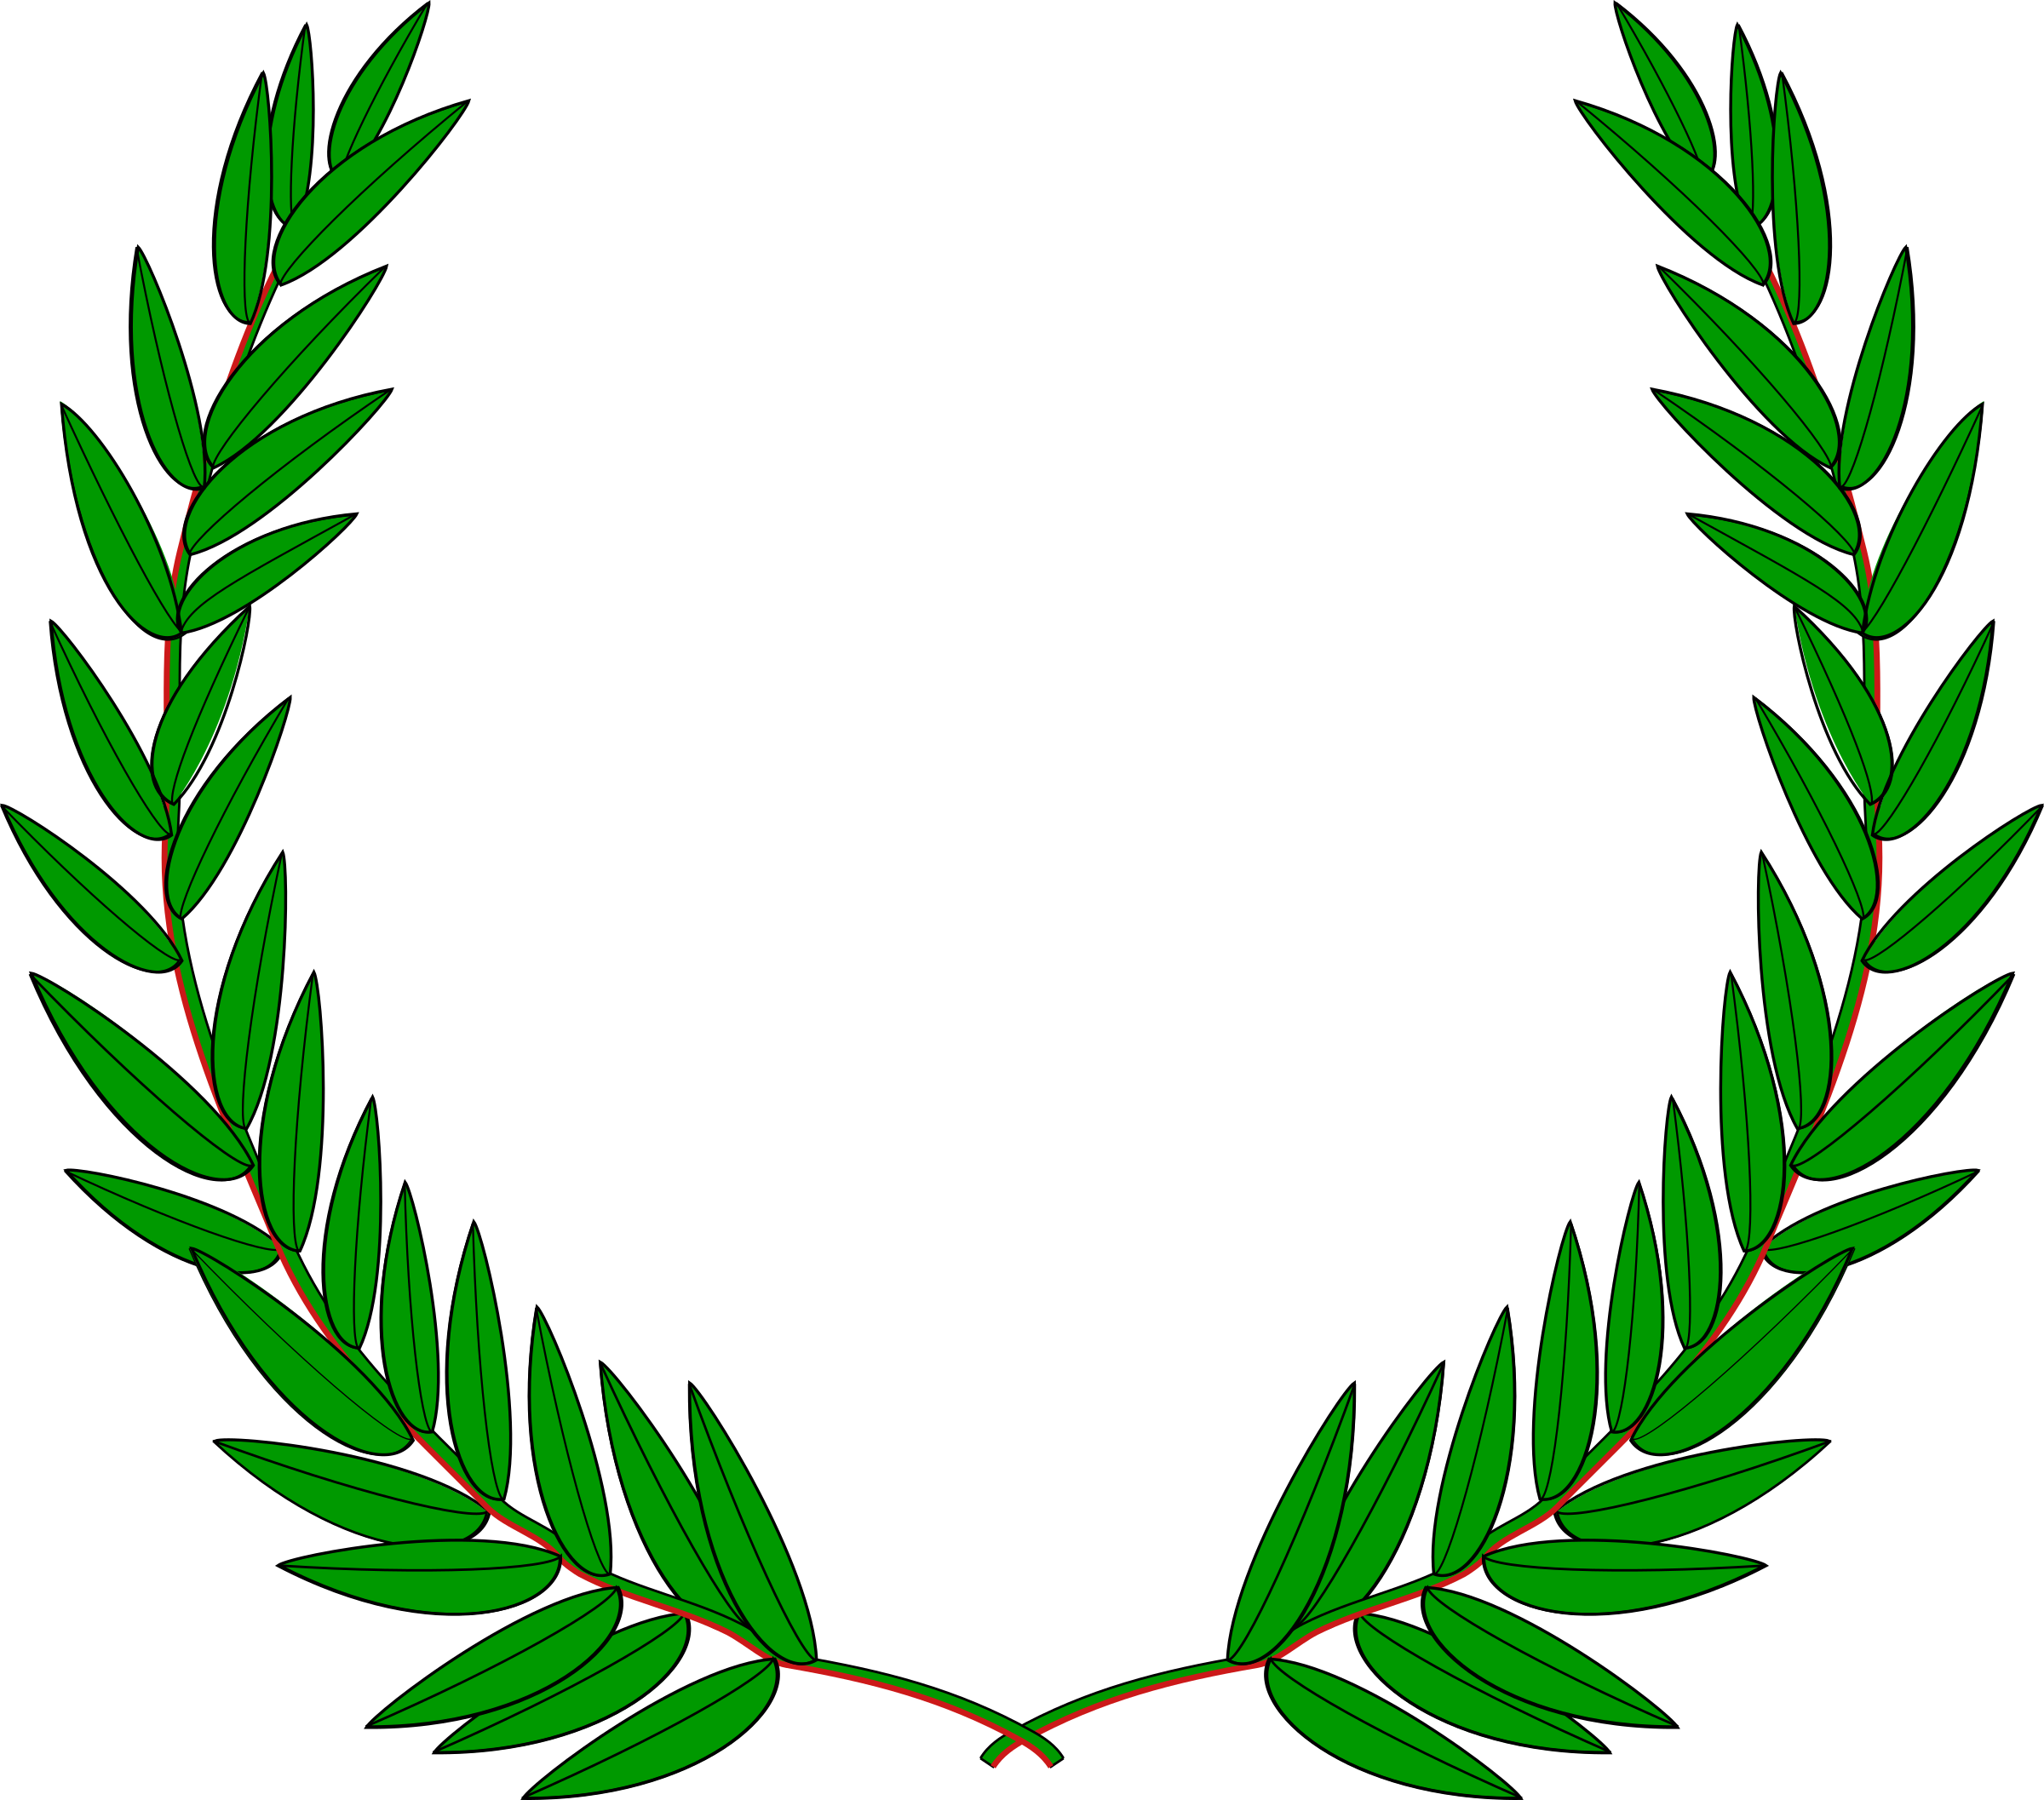 Wreath icons png free. Laurel clipart green